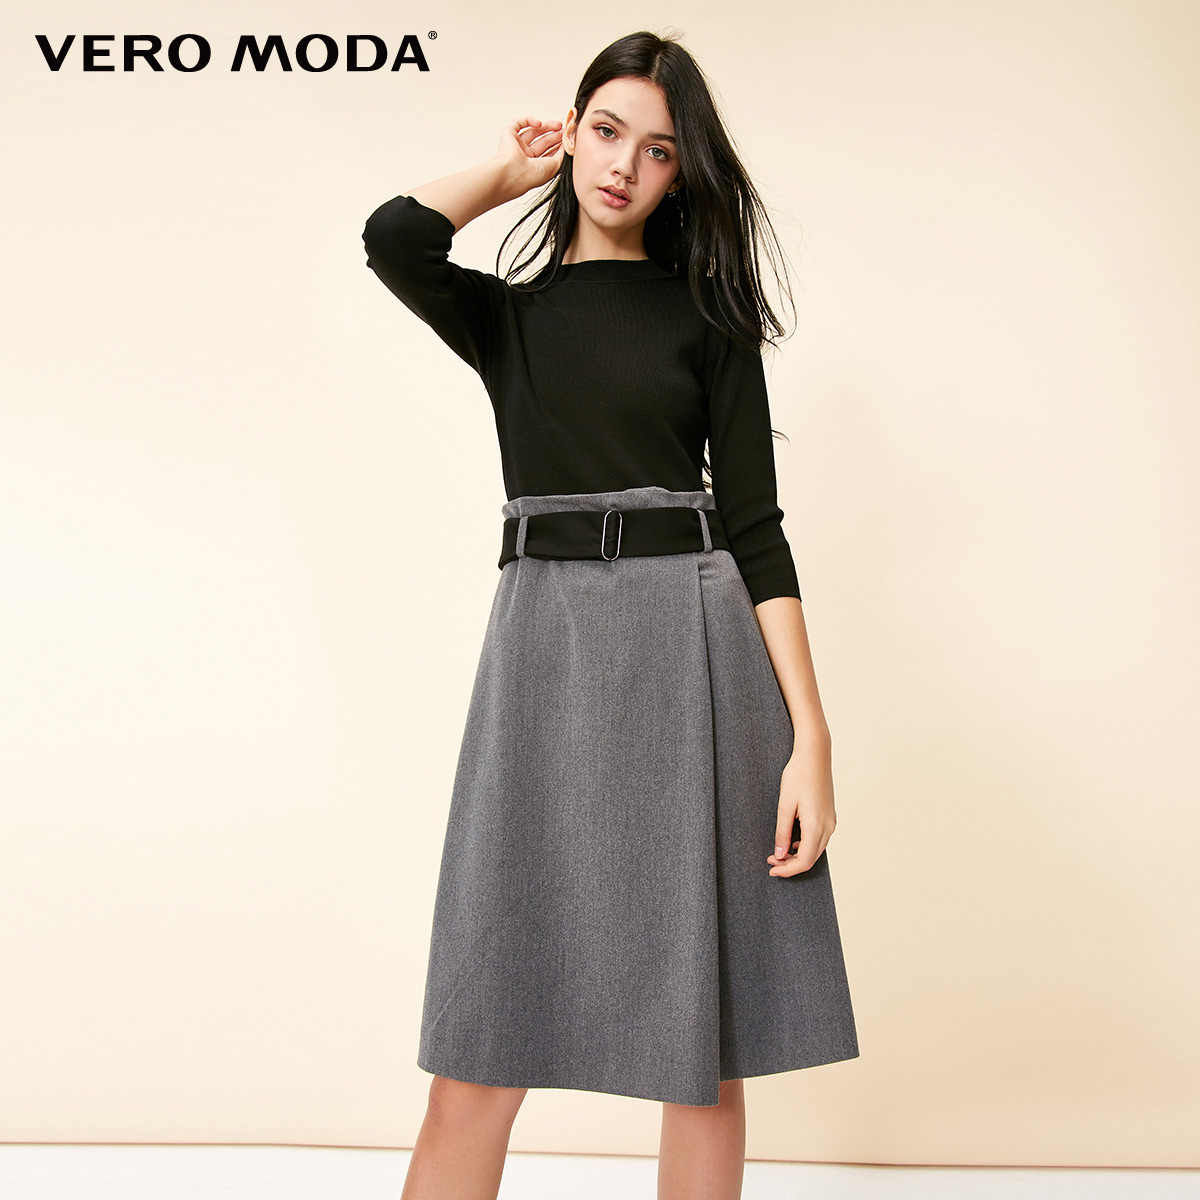 Vero Moda 2019 New Arrivals Knitted Splice Decorative Belt Dress | 31837C521